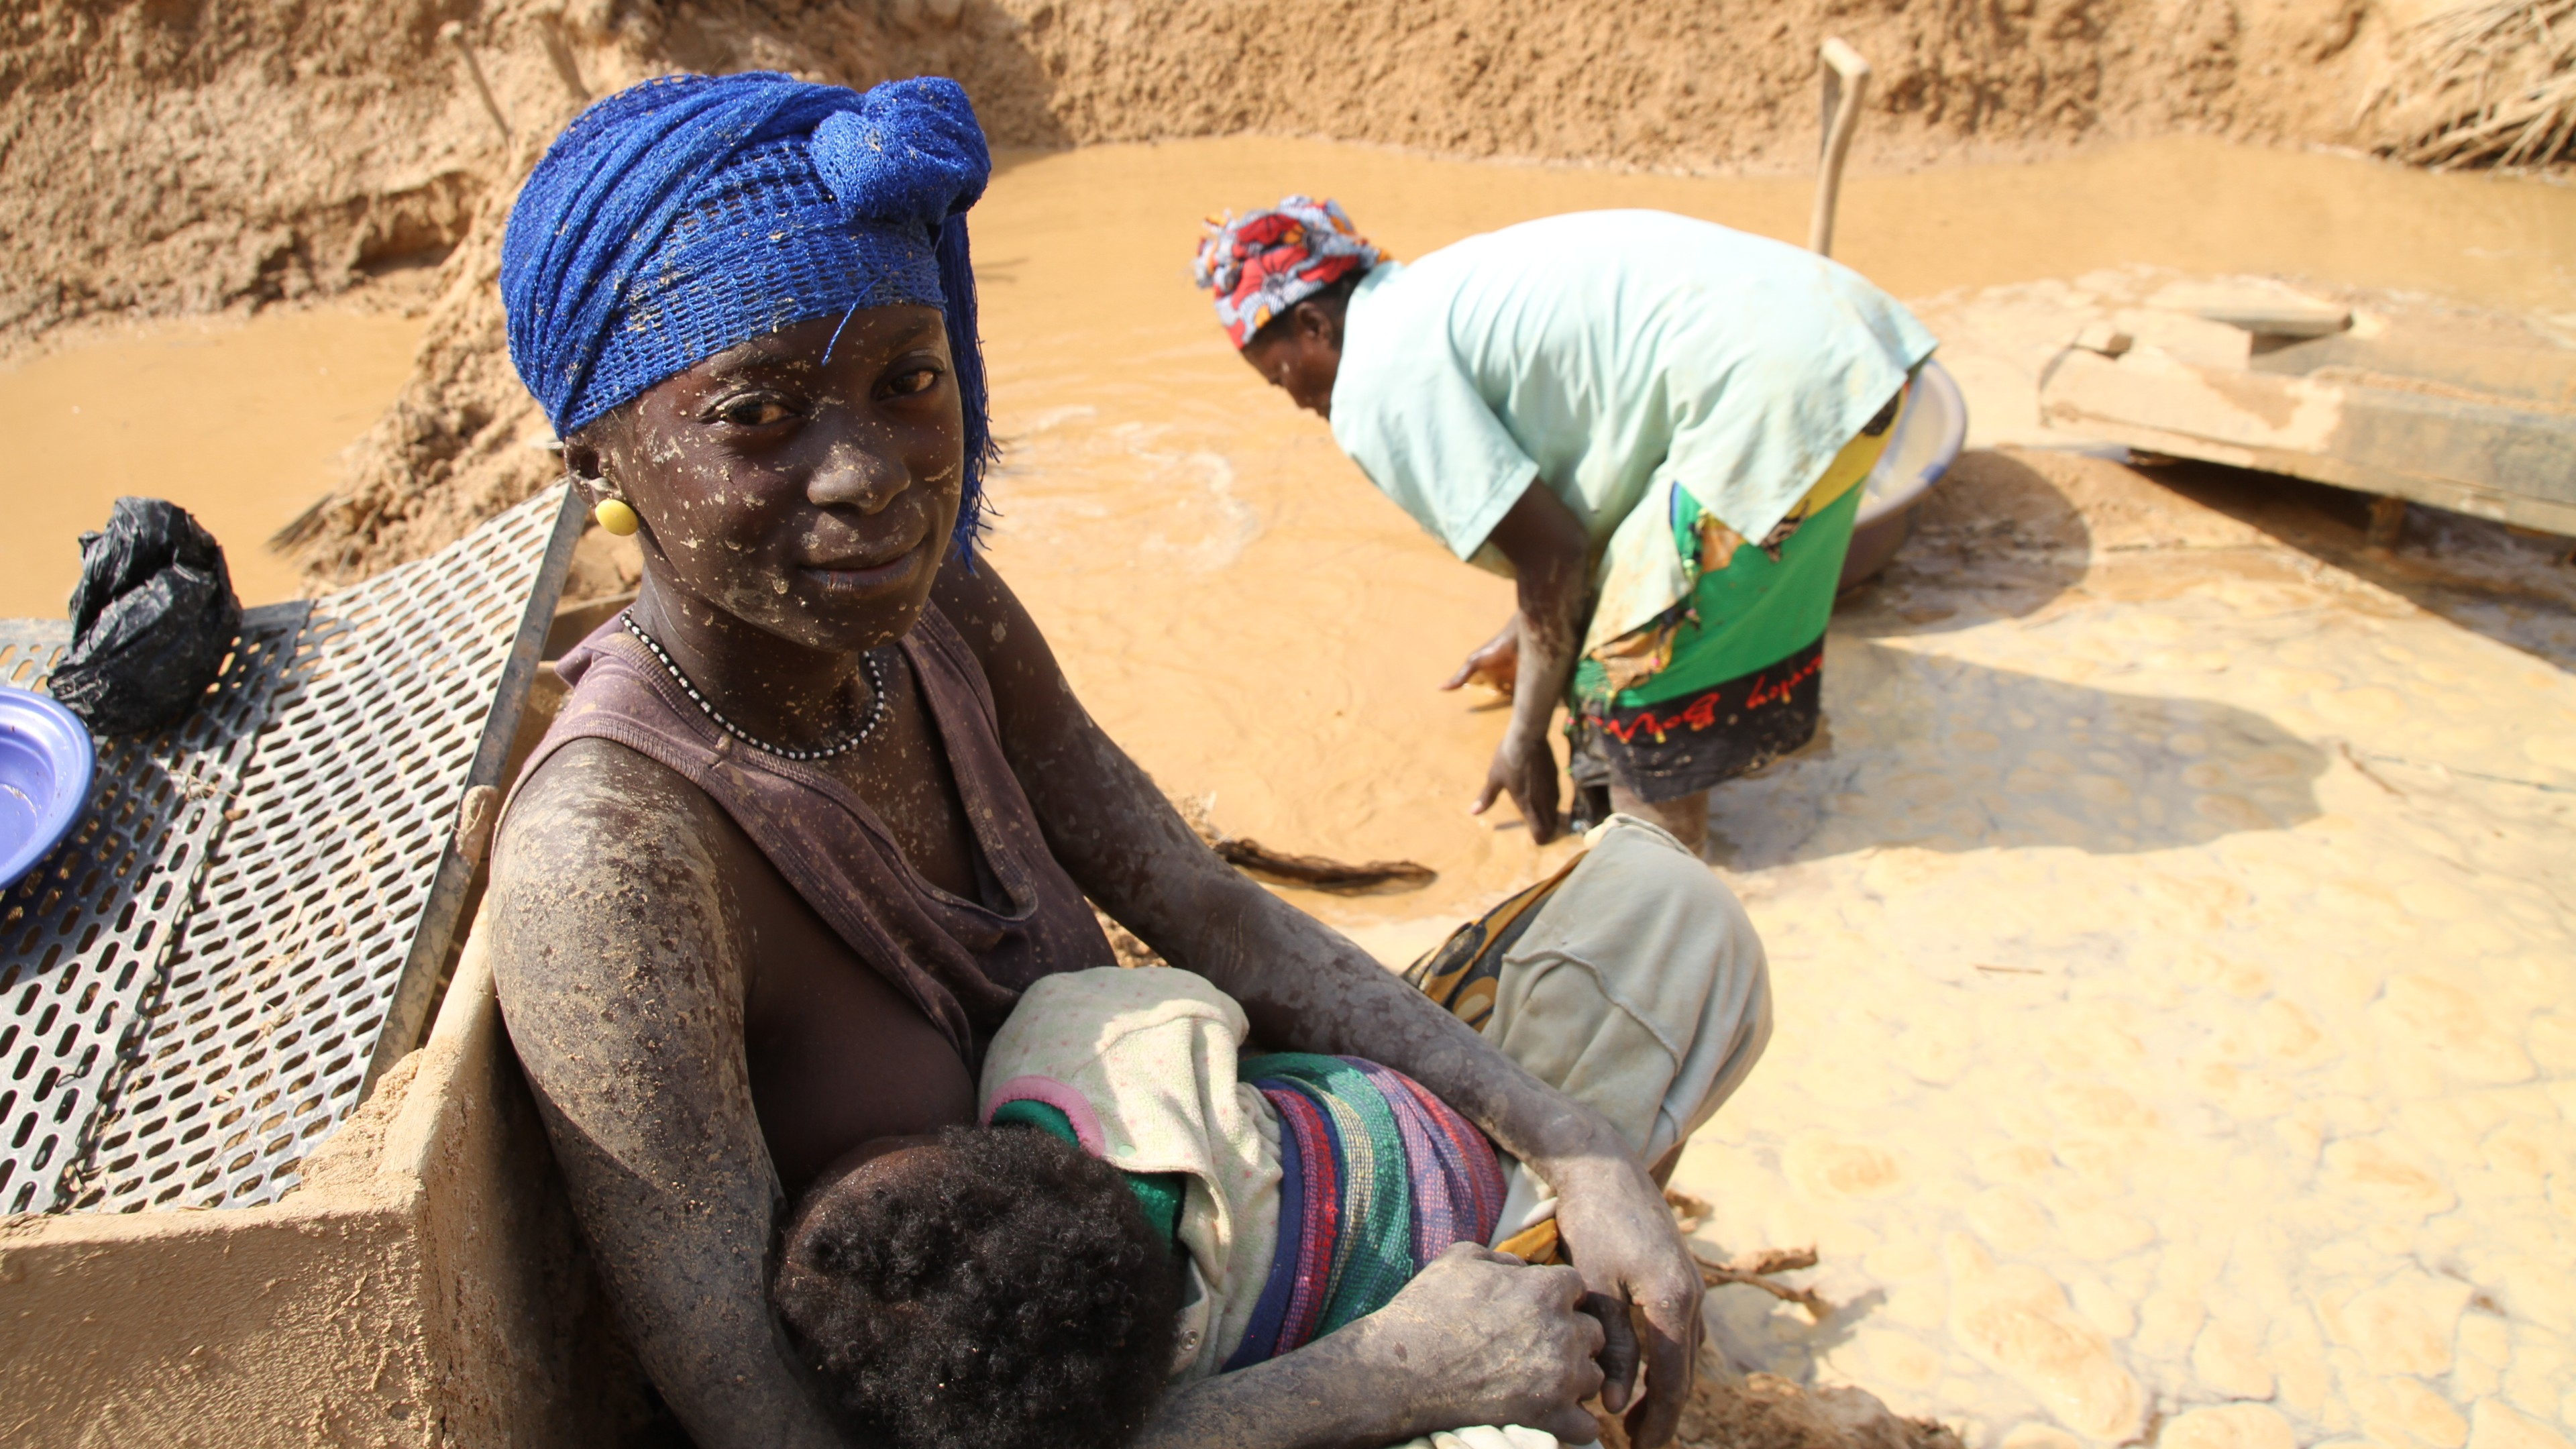 A lady breastfeeds her baby while sitting in a clay mine